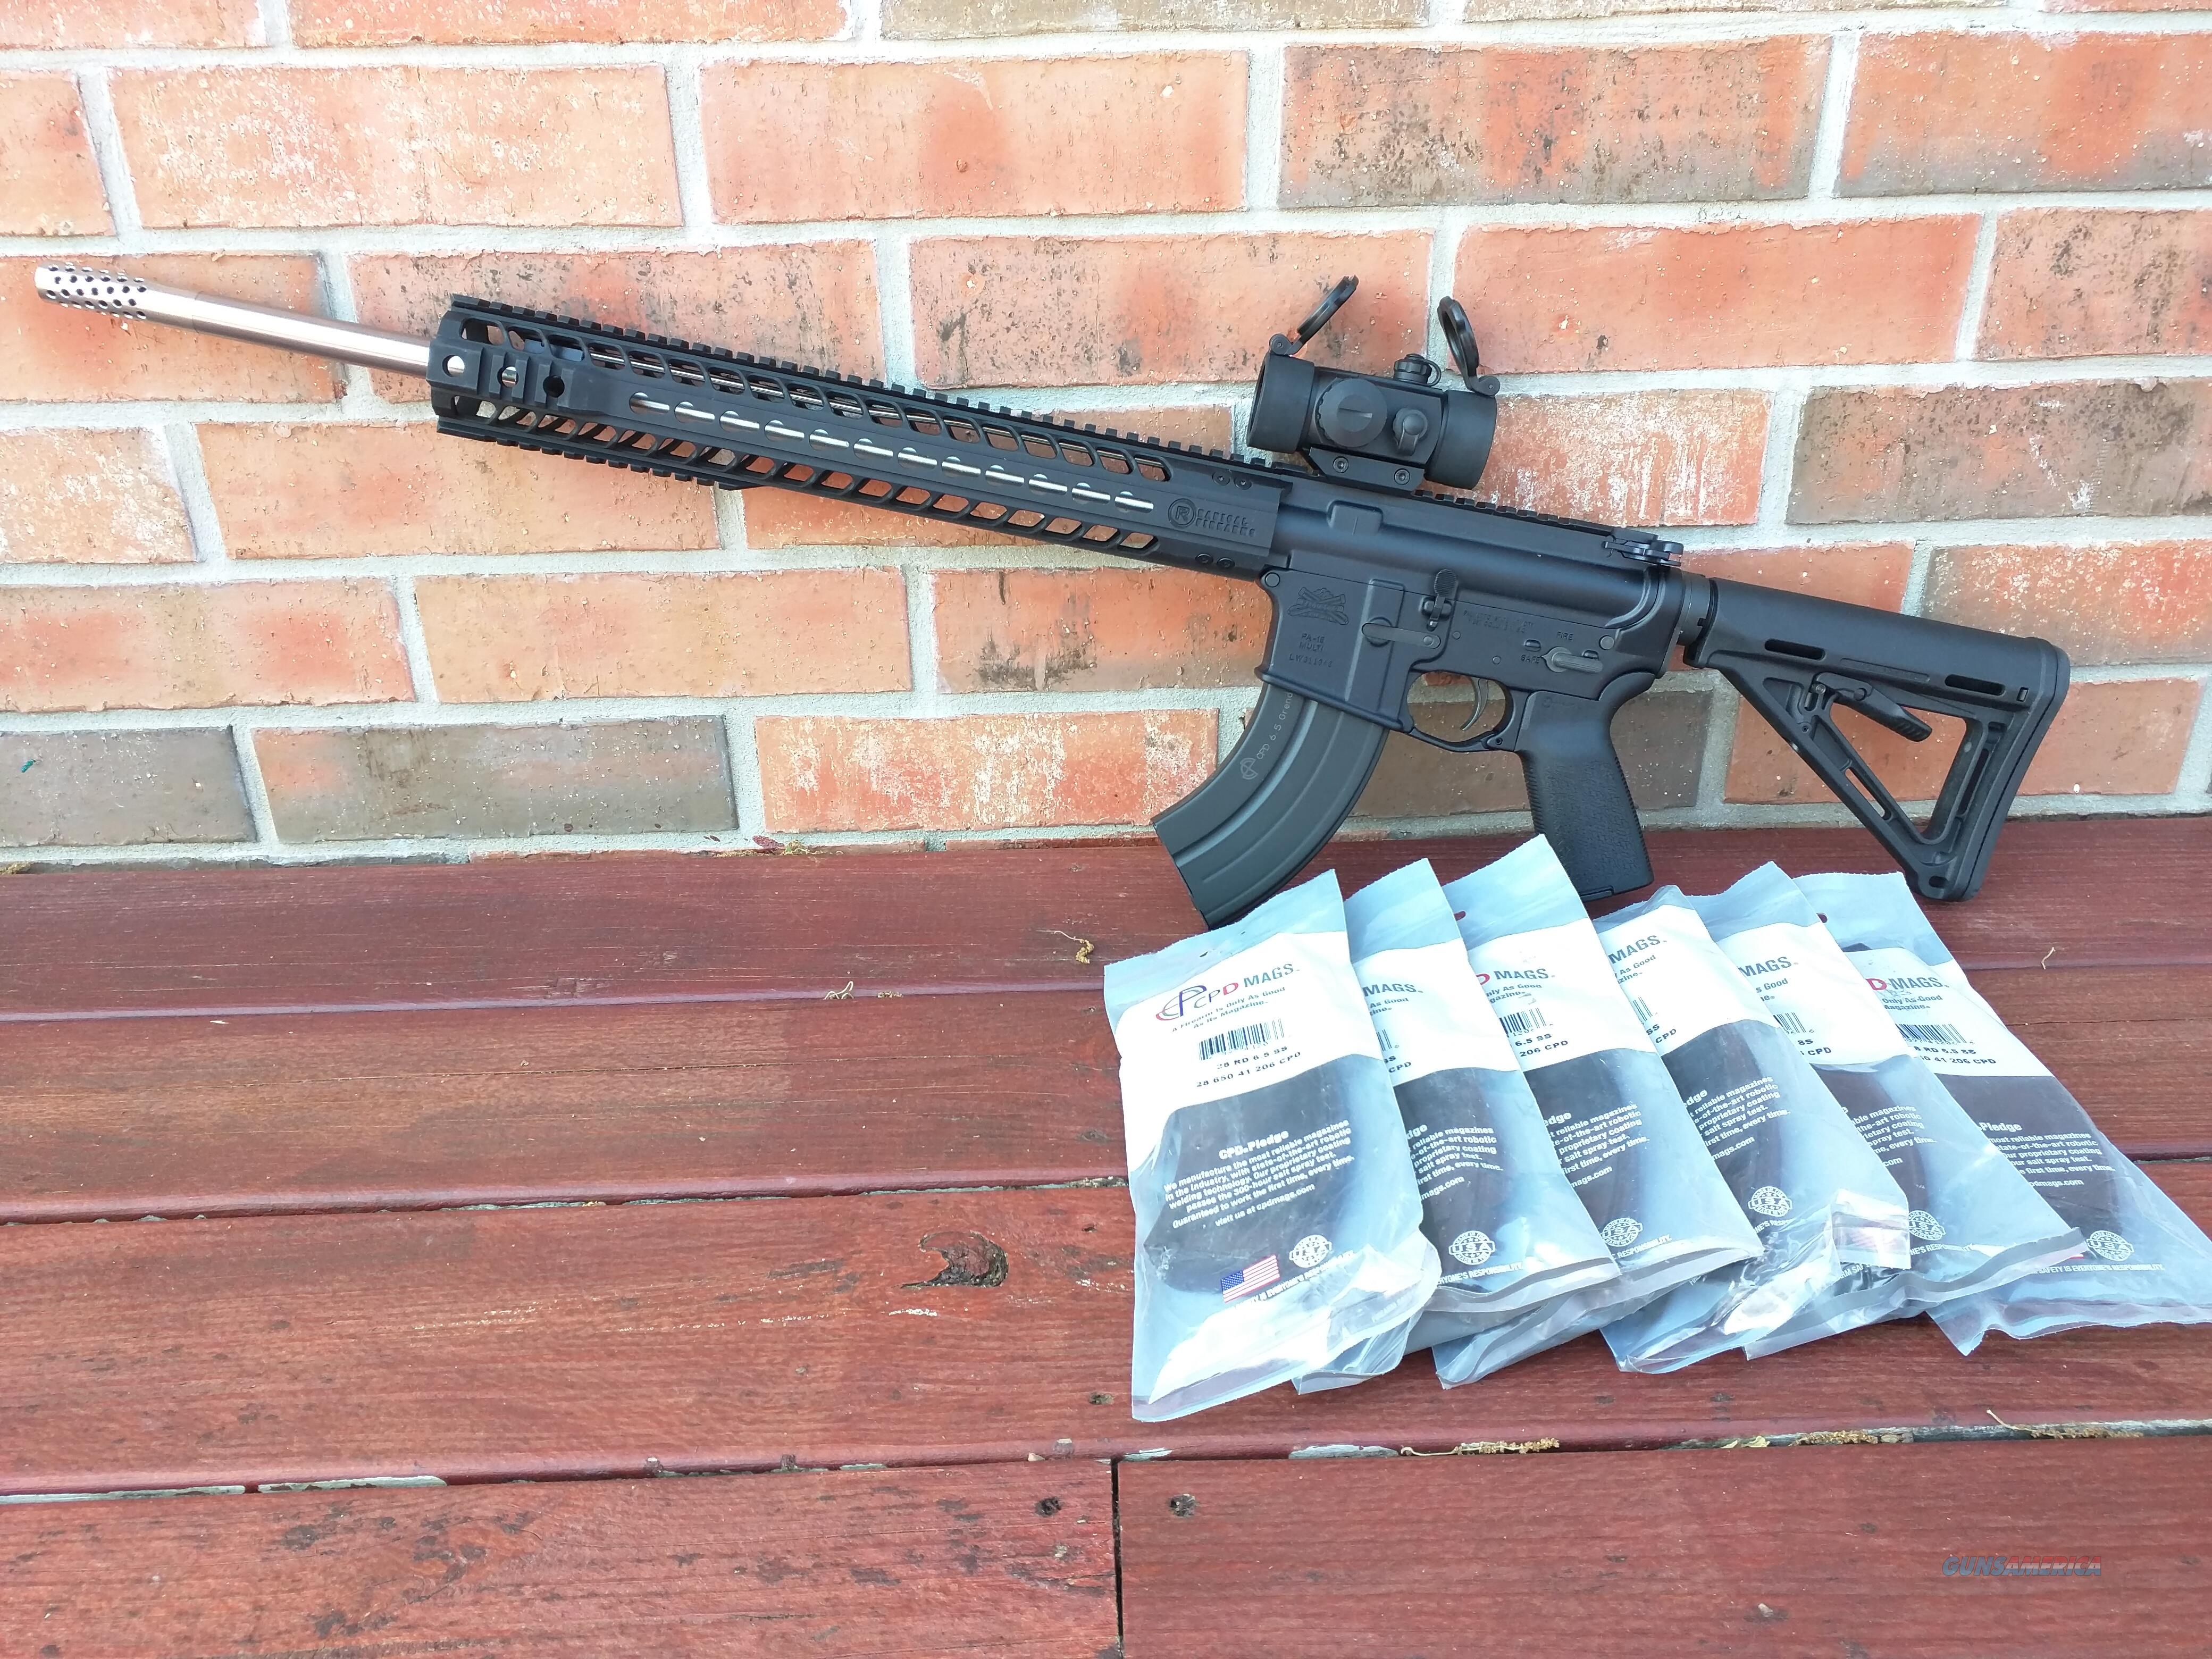 "Radical Firearms AR15 AR 15 6.5 Grendel NEW, PSA Lower Magpul Stock and Grip,TruGlo Red Dot,  ALL BRAND NEW (7) 28 Rd Mags 20"" Stainless Muzzle Brake 15"" Alum. Handguard FREE LAYAWAY!! READY TO ROCK!!!  Guns > Rifles > Radical Firearms Rifles"